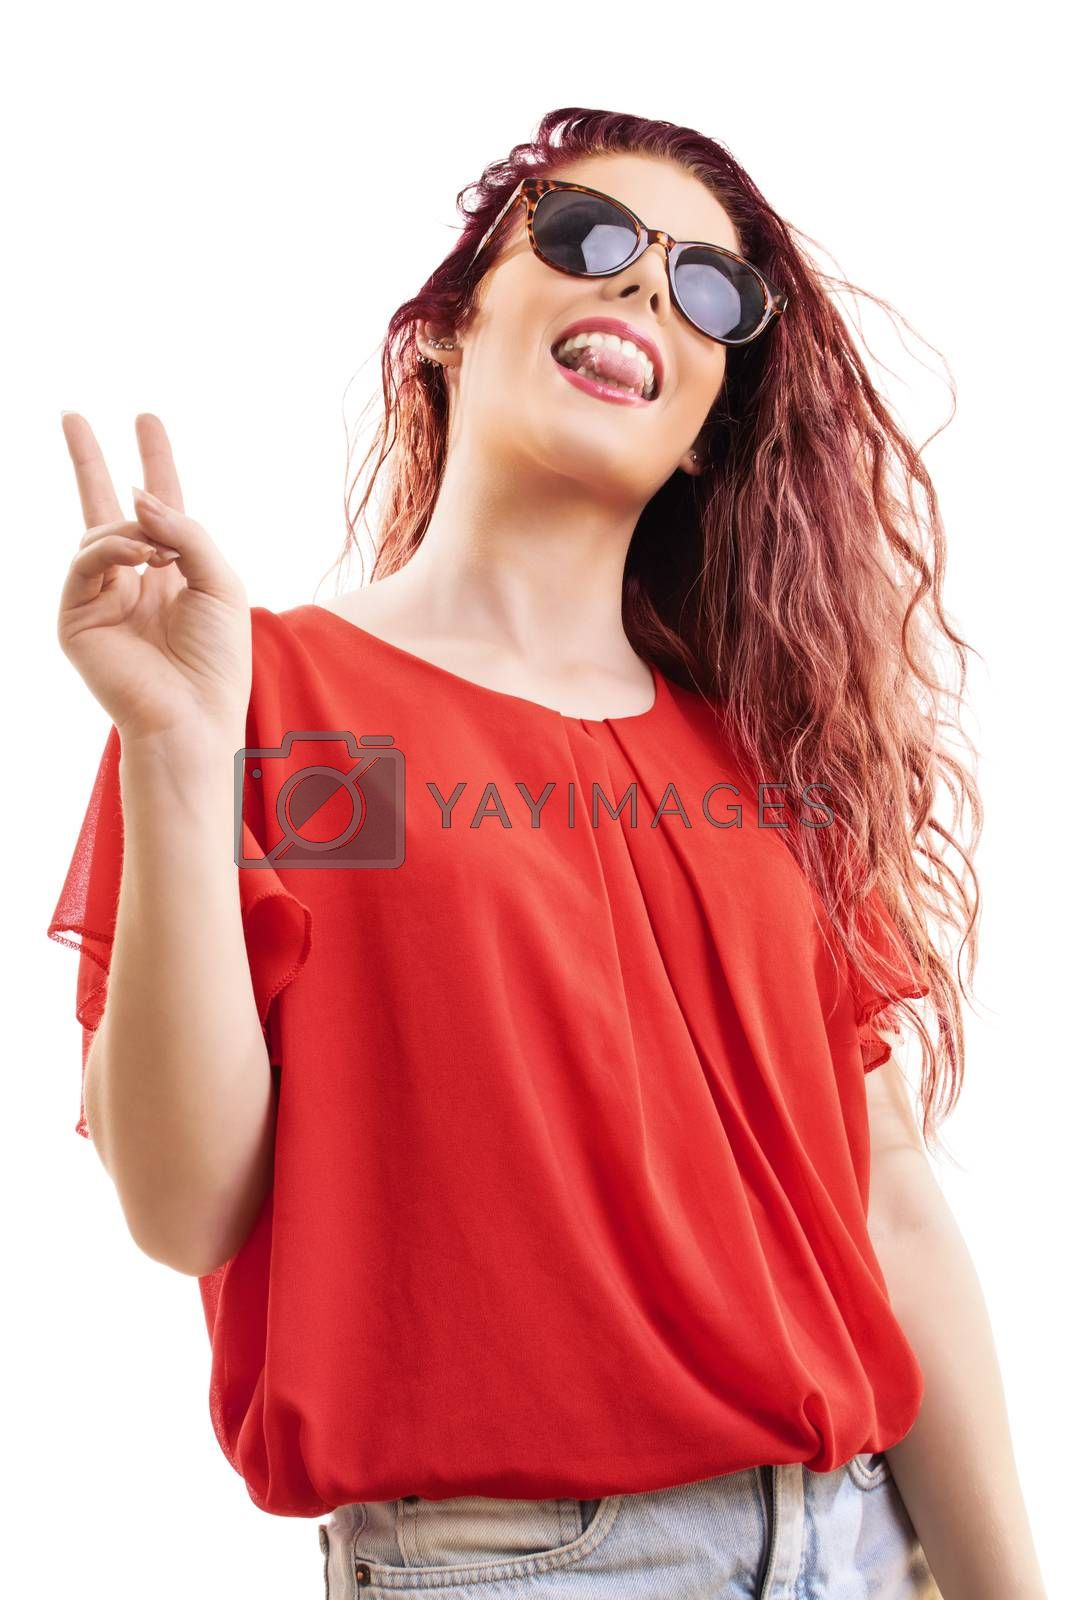 Bottom up view of a beautiful young redhead girl in a red blouse with sunglasses showing tongue, gesturing the peace sign, isolated on a white background.